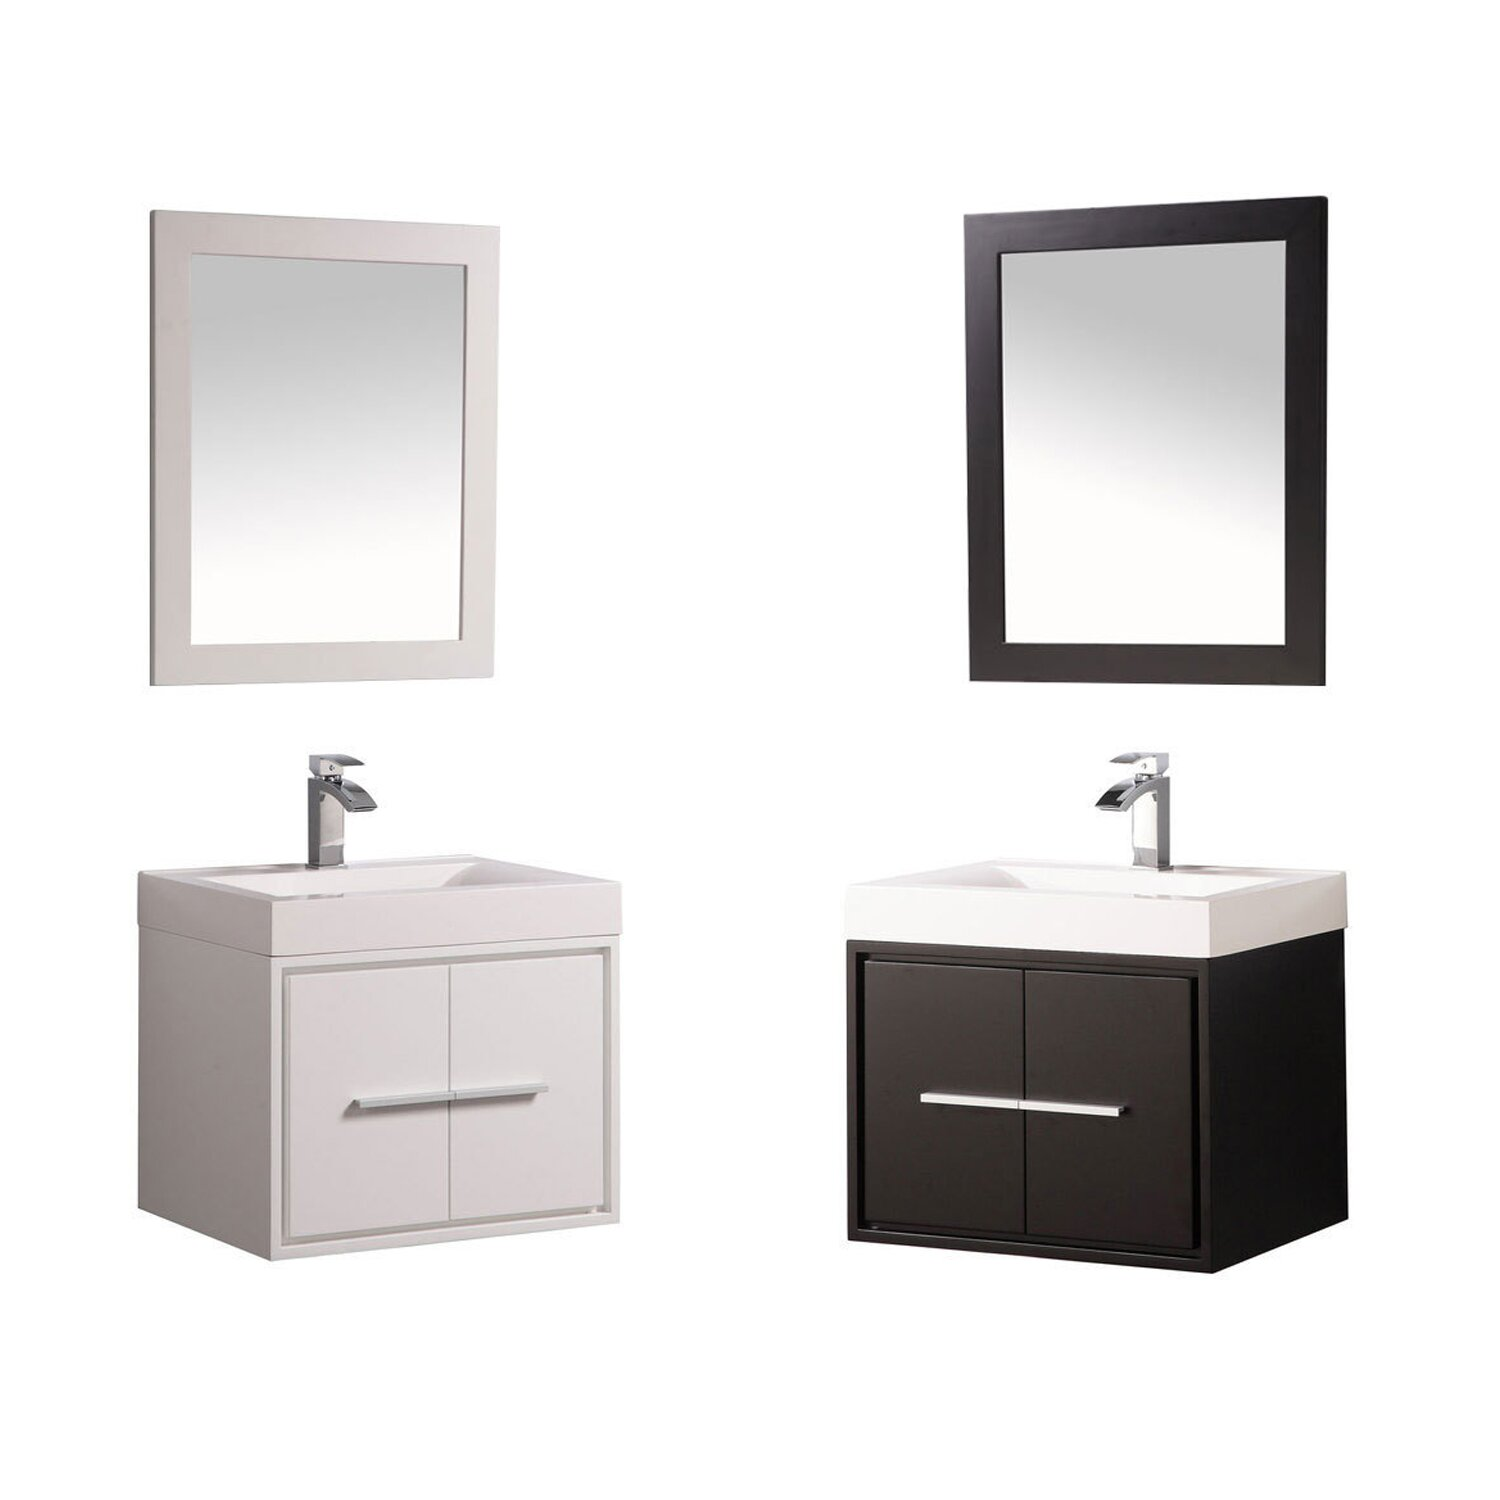 Mtdvanities Cypress 24 Single Floating Bathroom Vanity Set With Mirror Reviews Wayfair